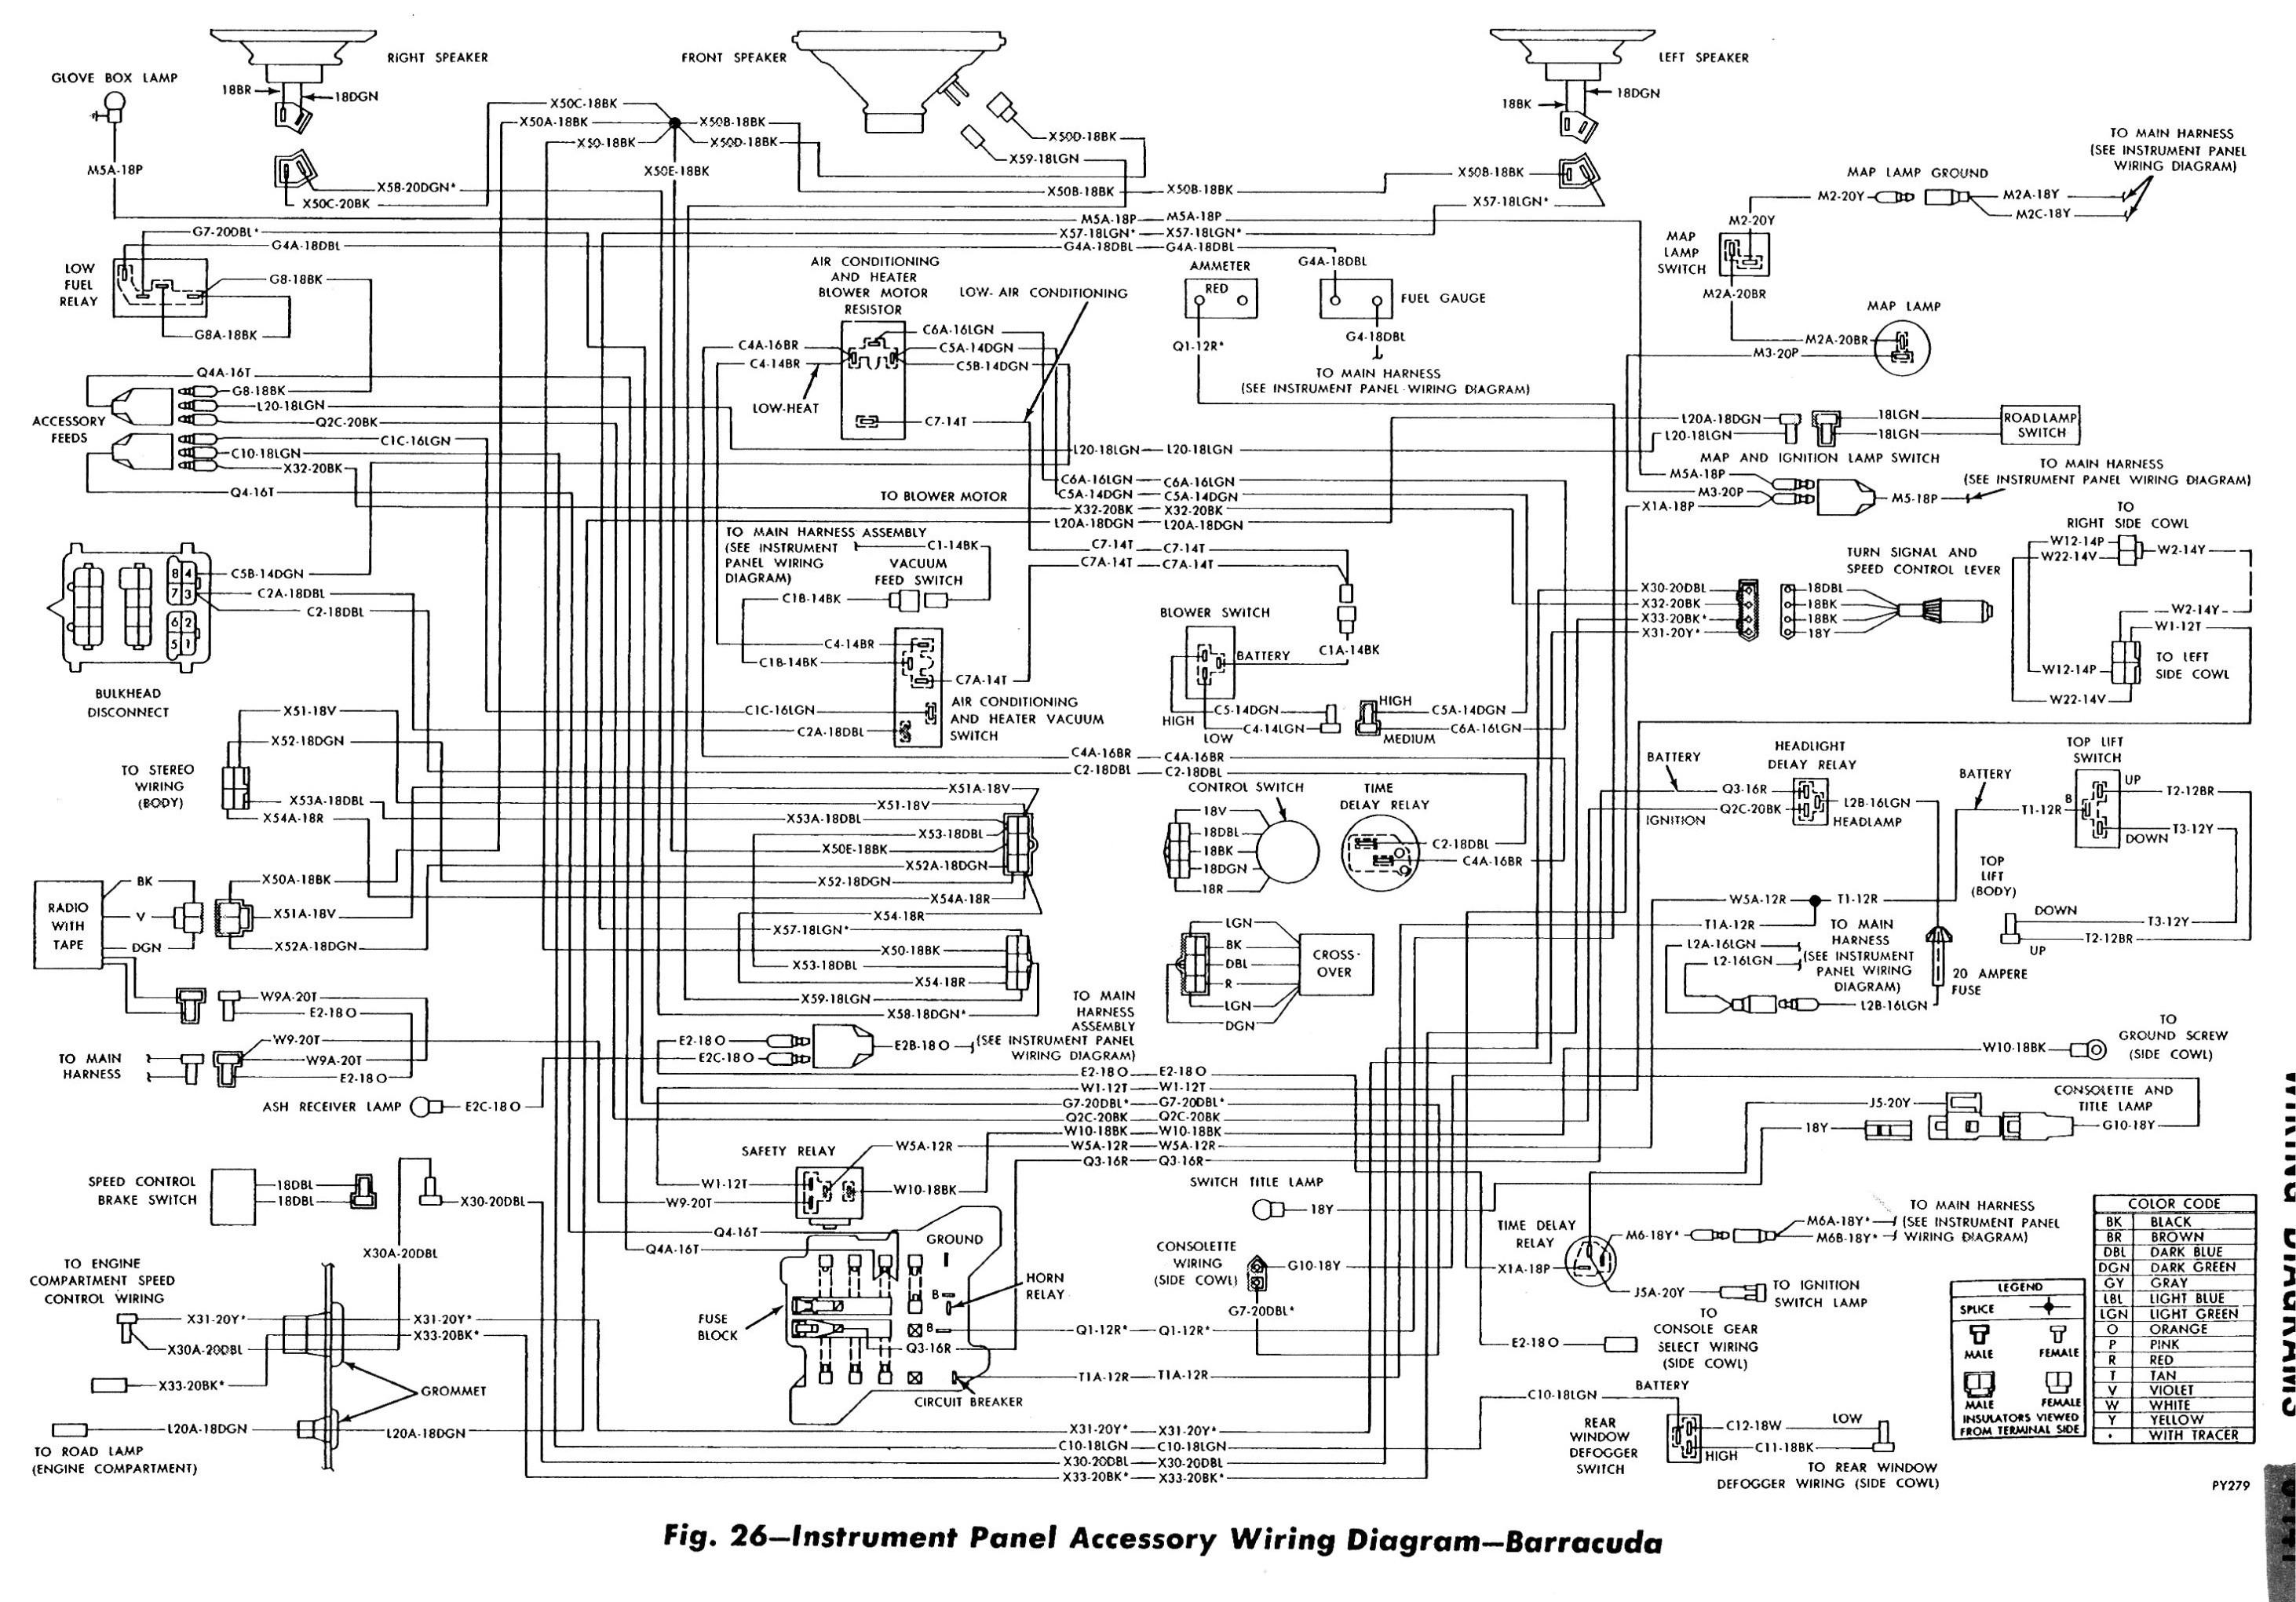 70 Cuda Wiring Diagram | Free Download Wiring Diagram ...